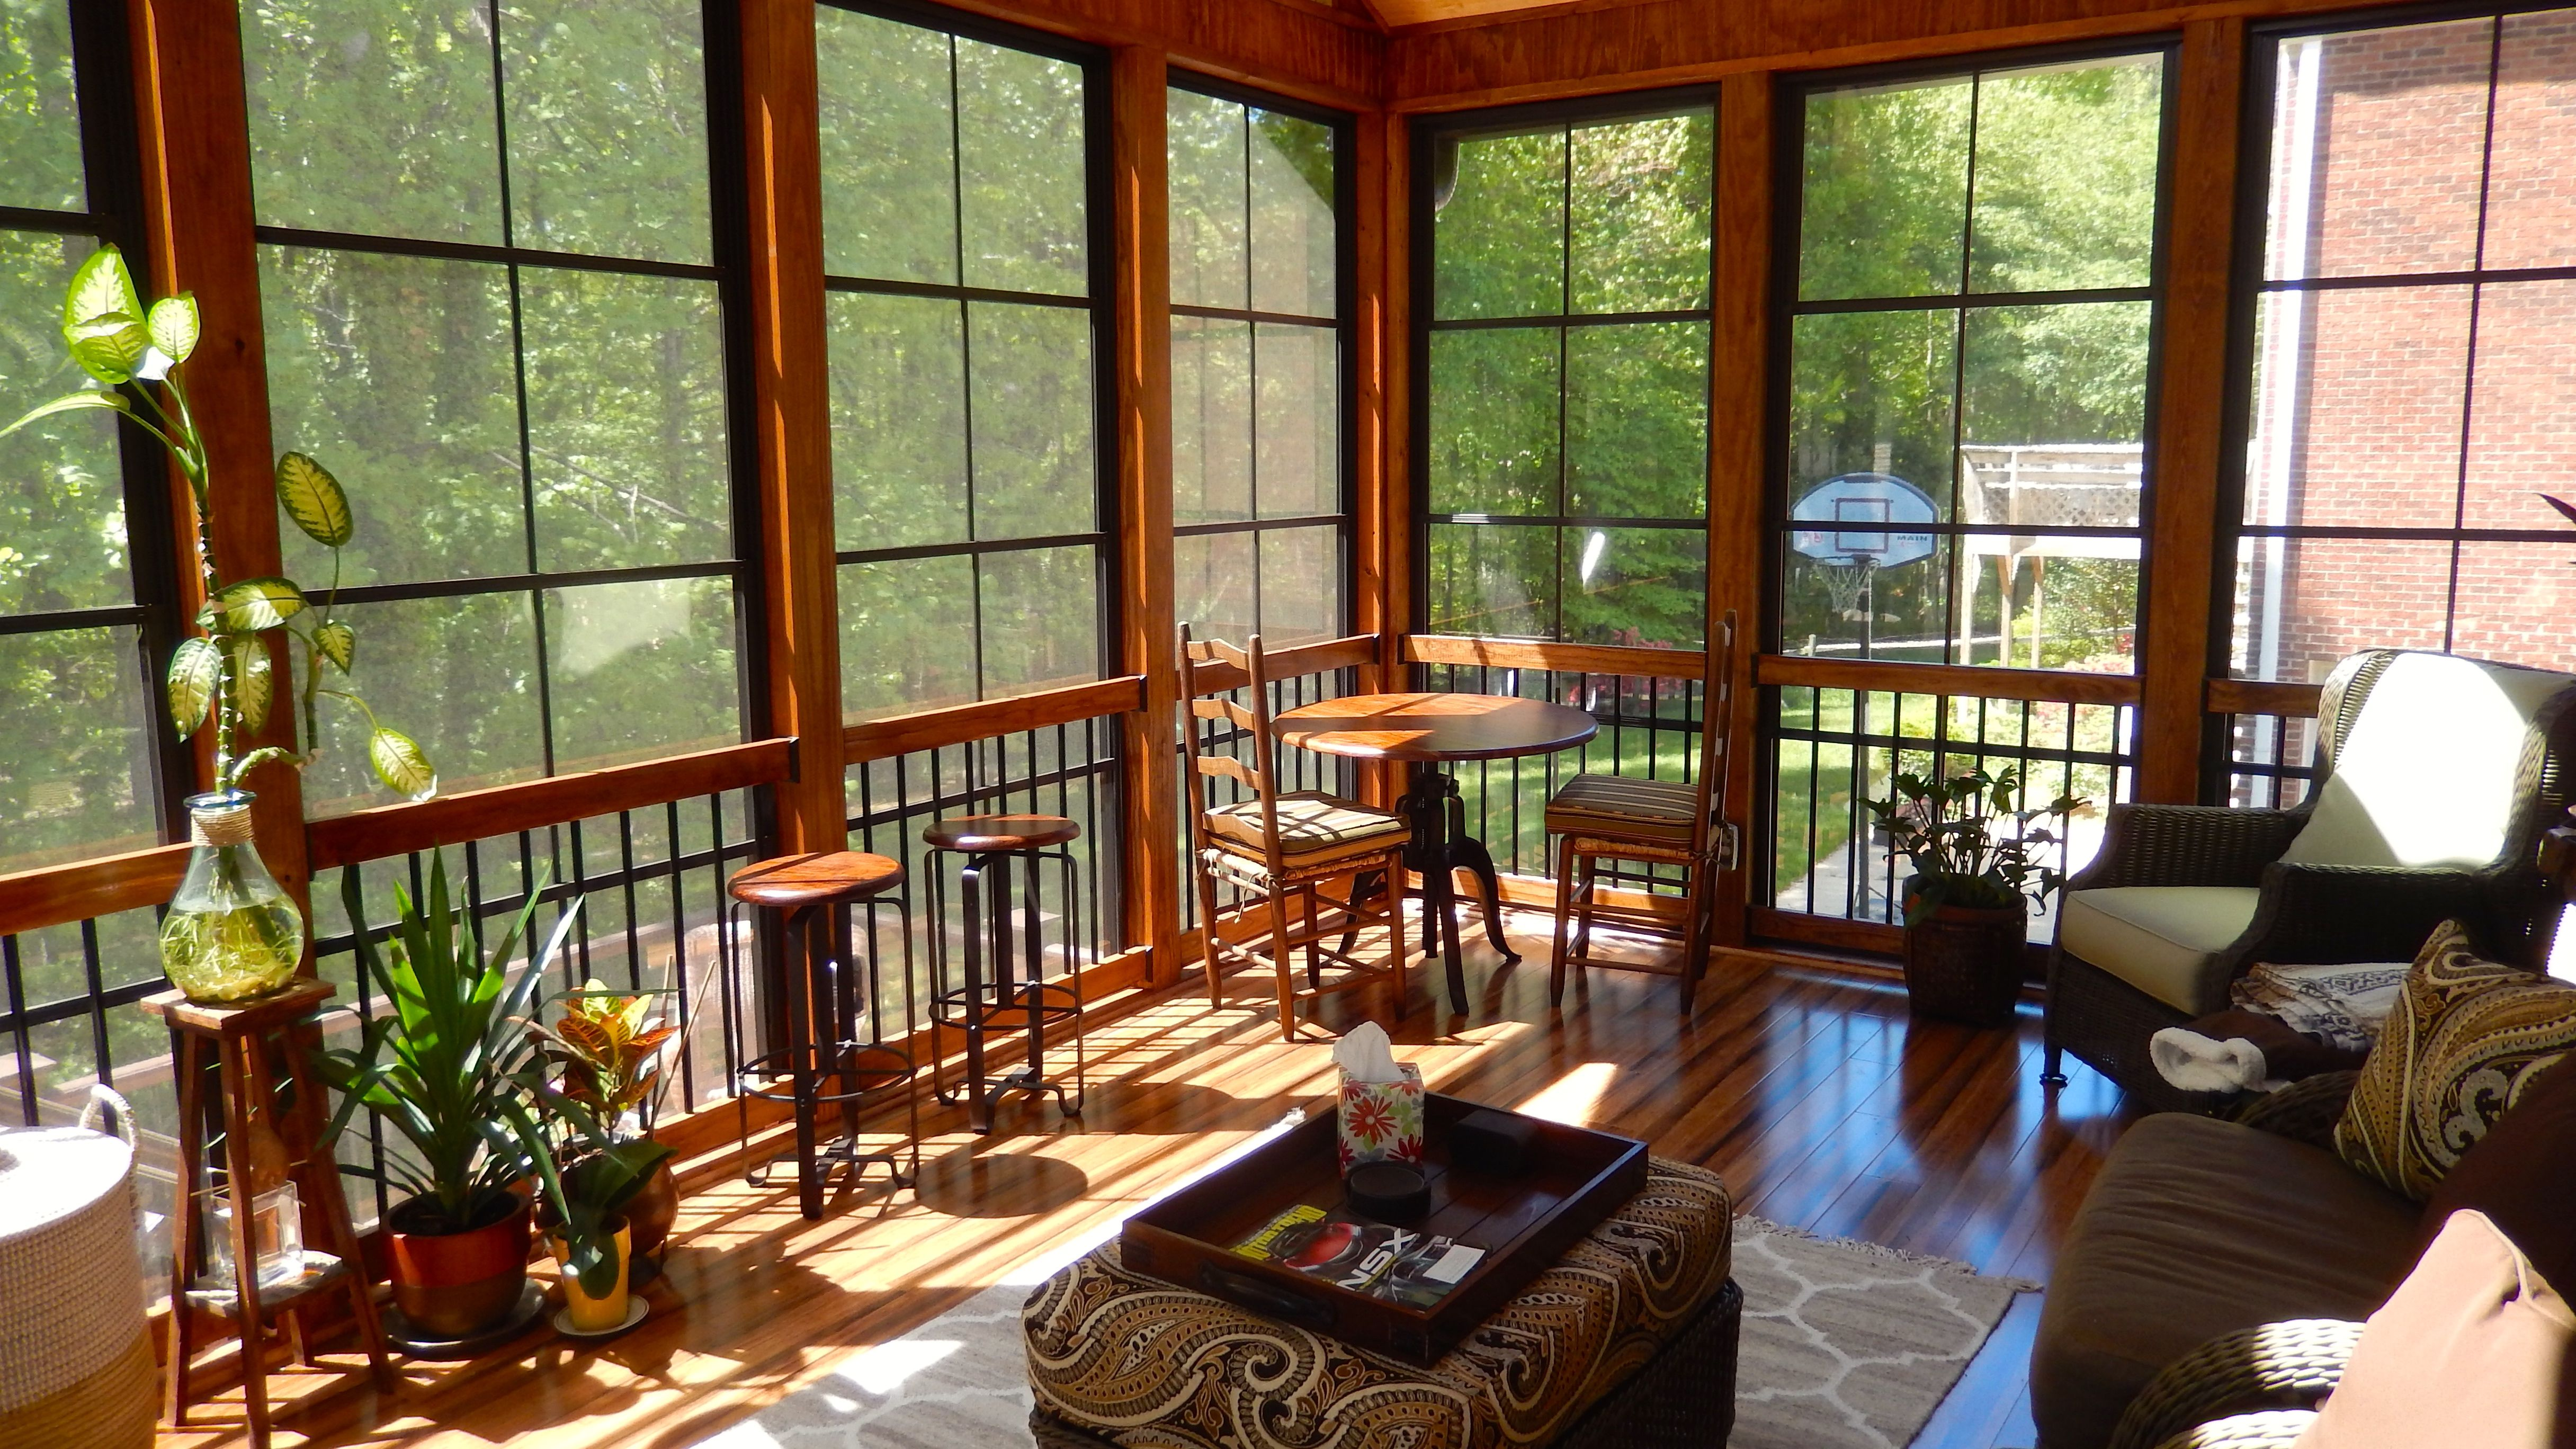 How To Build A Deck On A Budget Porches